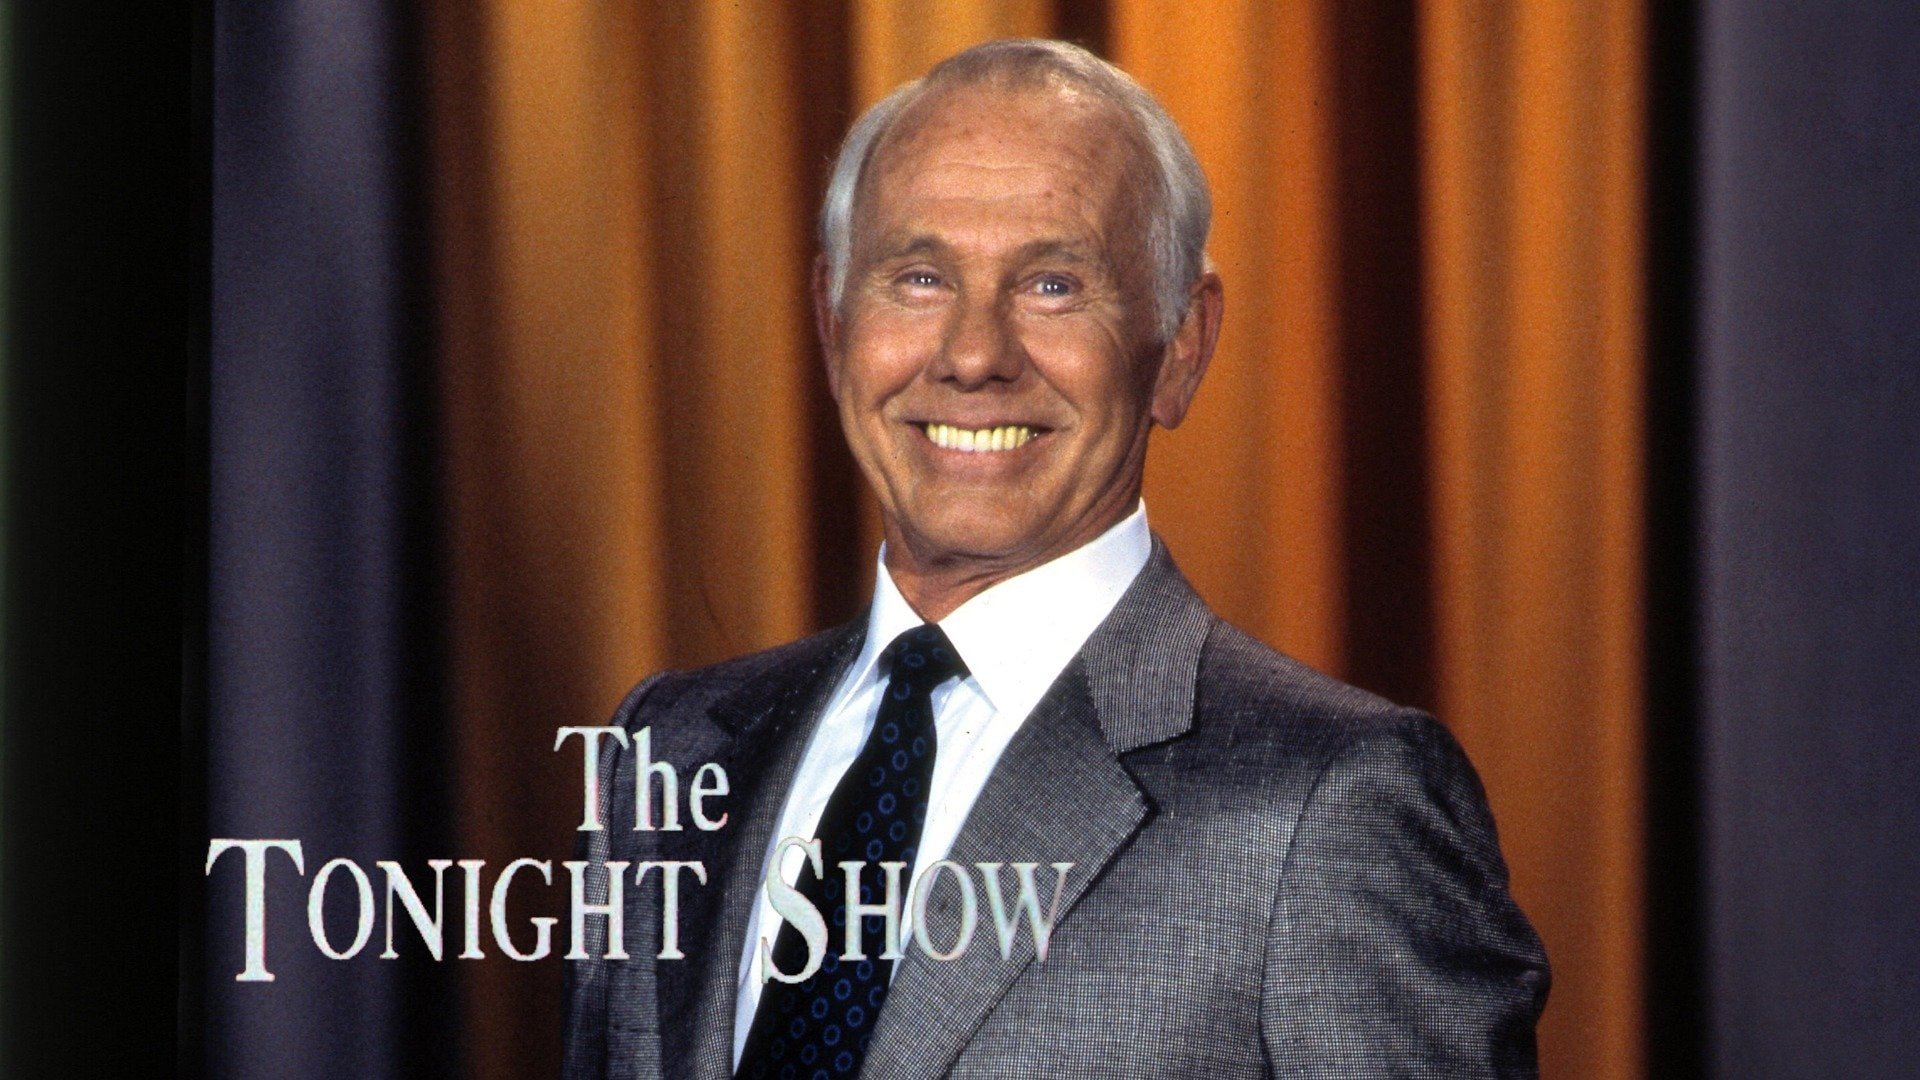 The Johnny Carson Show: The Best Of George Carlin (8/24/88)